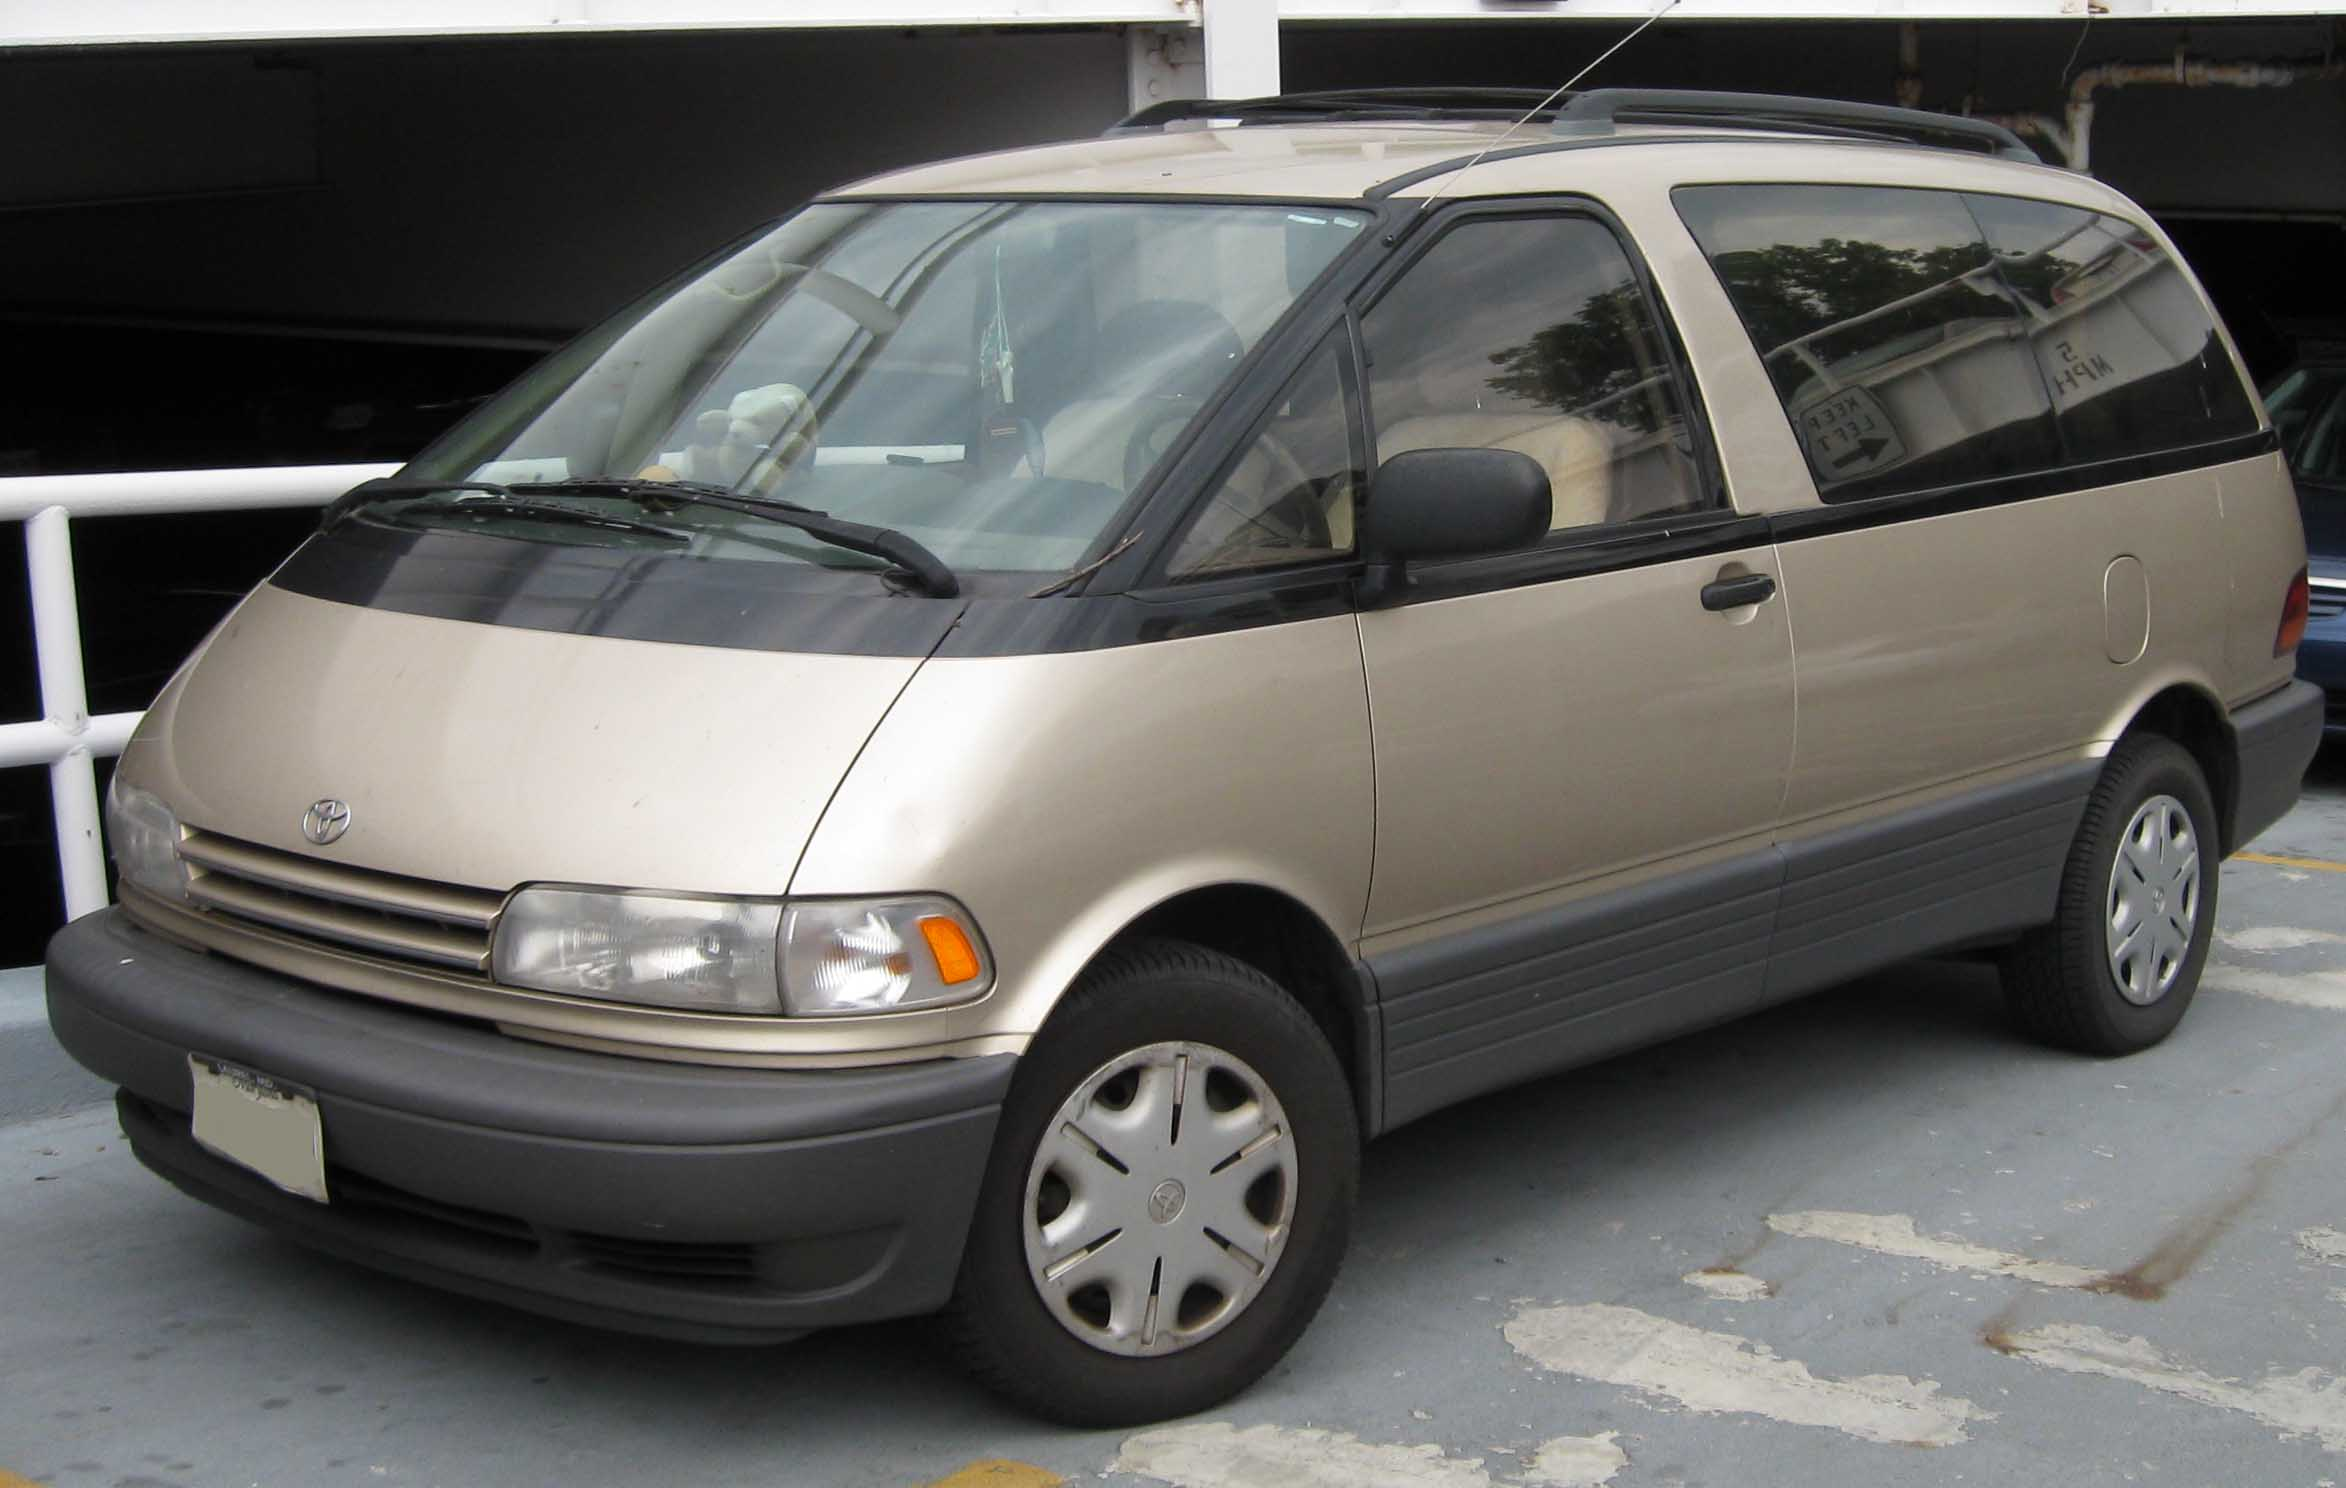 Minivan For Sale >> File:Toyota Previa .jpg - Wikimedia Commons